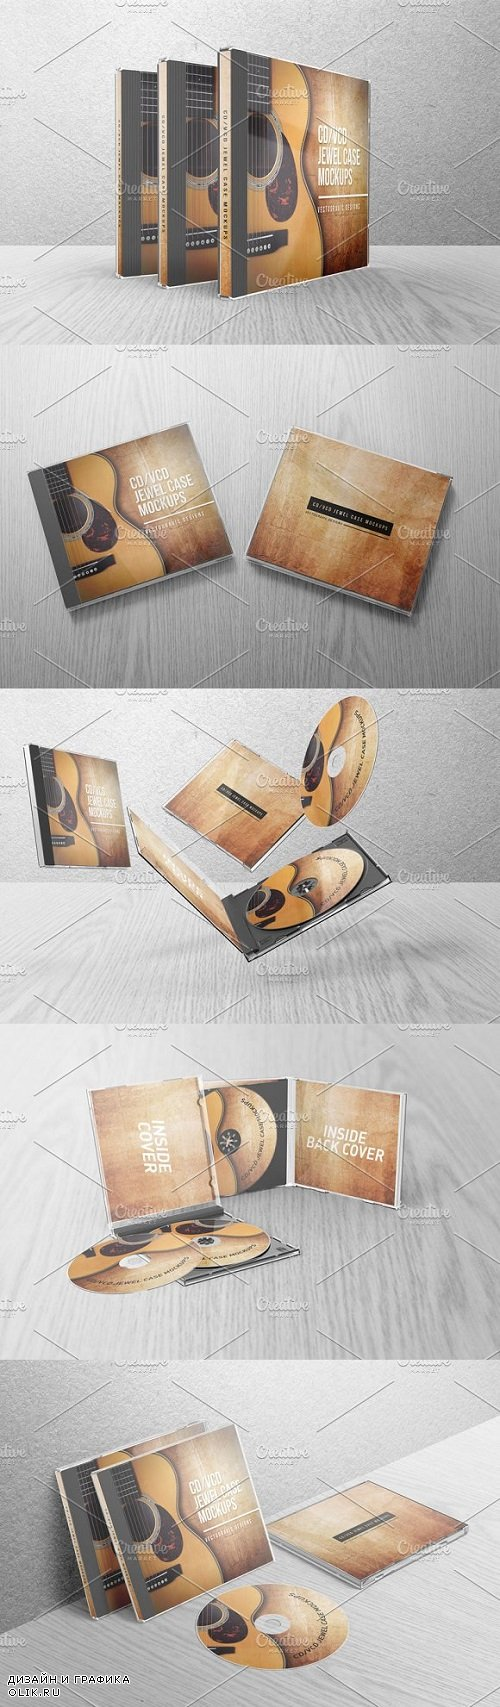 CD VCD Jewel Case Mockups v2 1591841